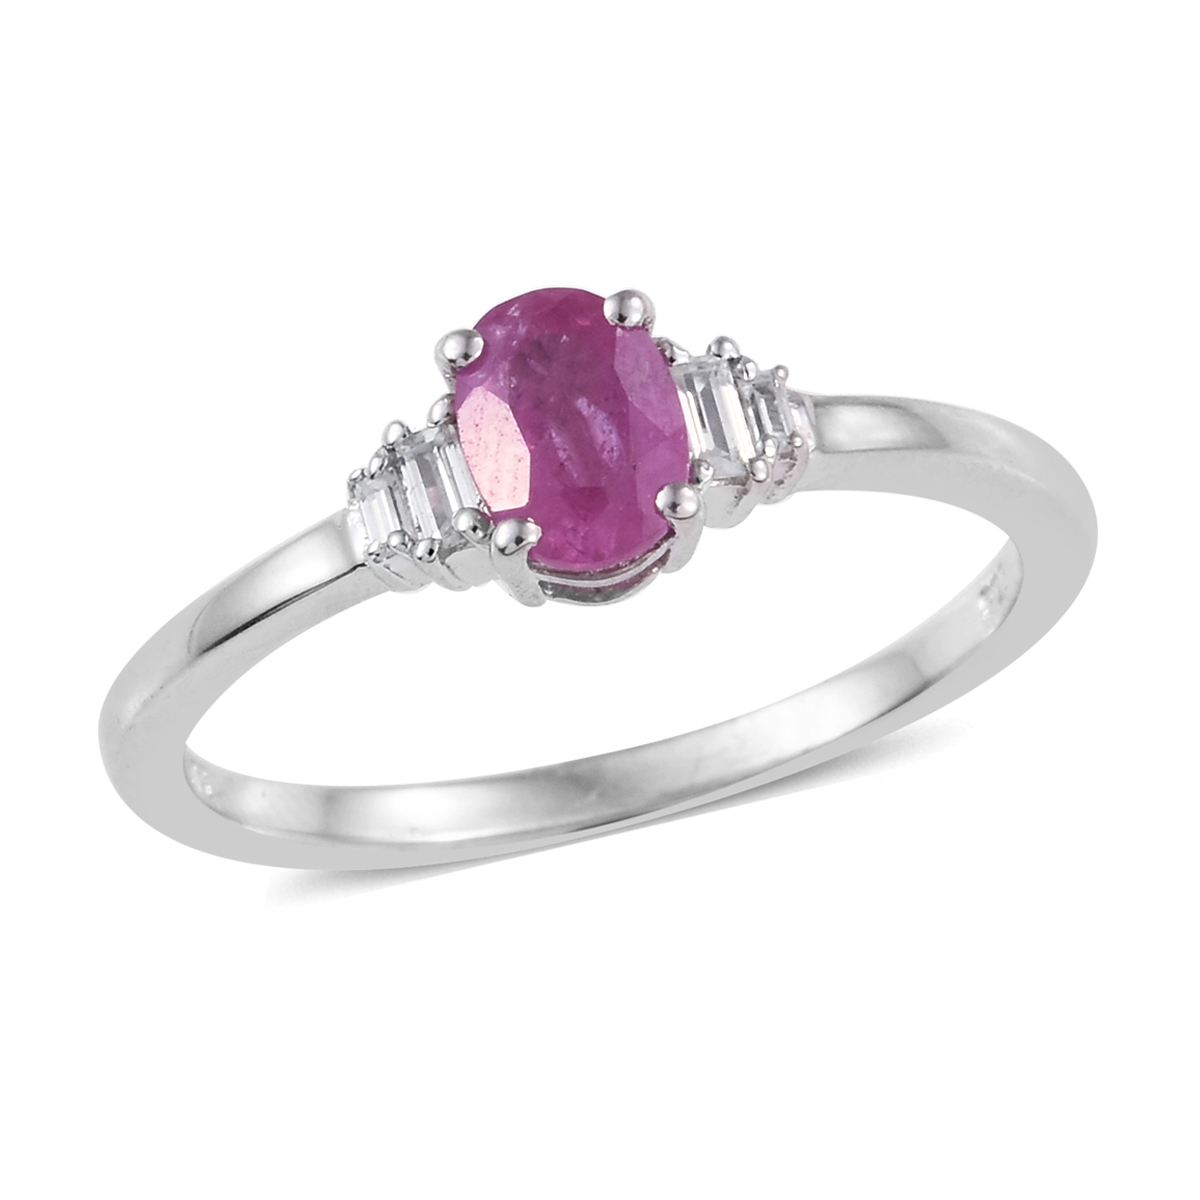 Ilakaka Hot Pink Sapphire, Cambodian Zircon Ring in Platinum Over Sterling Silver (Size 9.0) 1.56 ctw